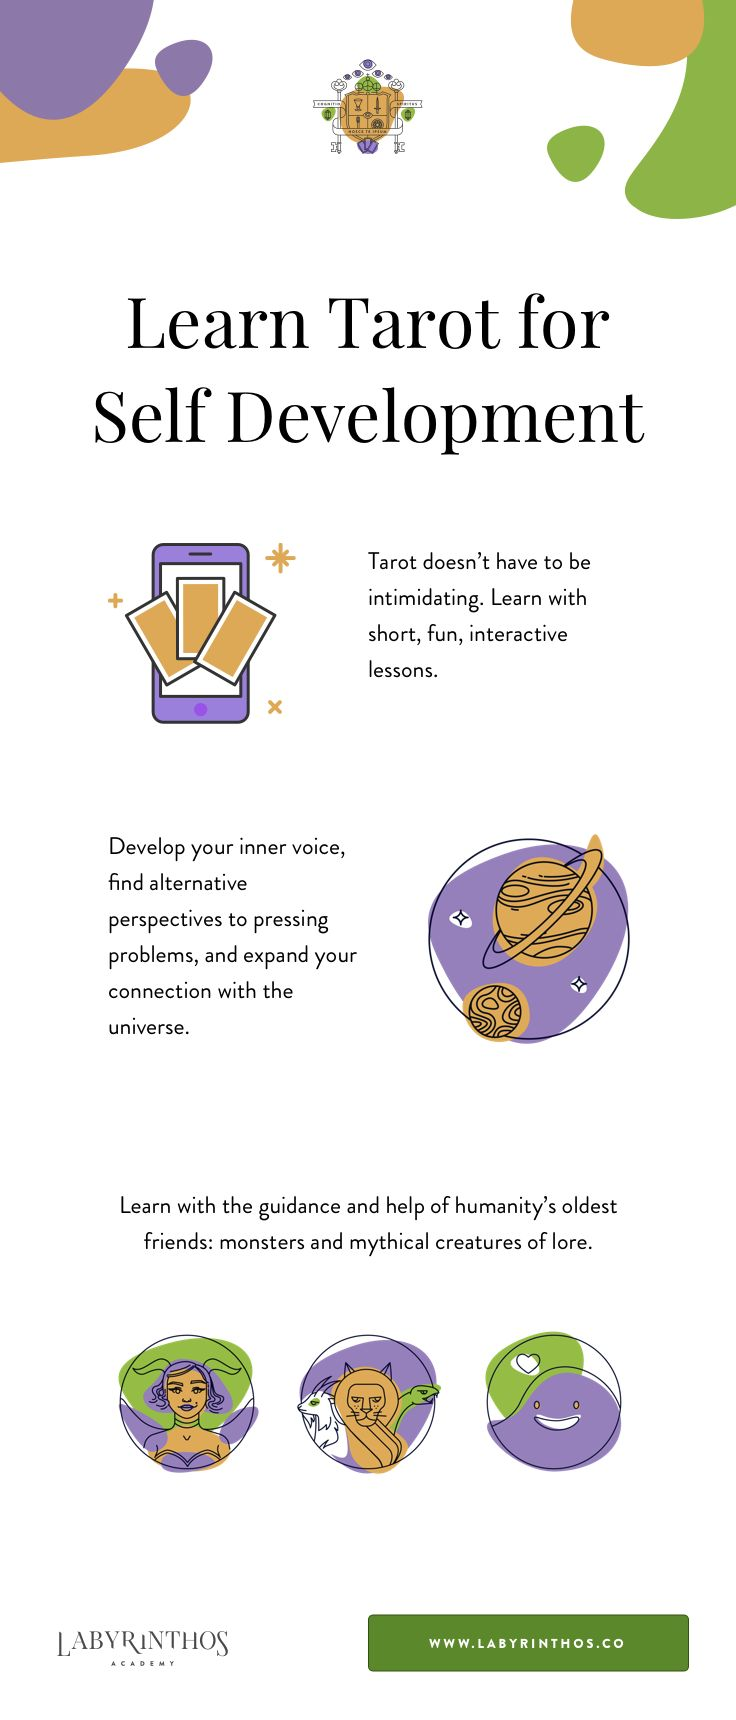 Get started learning tarot today. We provide simple, interactive lessons to learn tarot for self understanding, intuition, meditation and more. You don't have to be intimidated! It's more like a method of spiritual therapy than it is any sort of psychic ability. :)